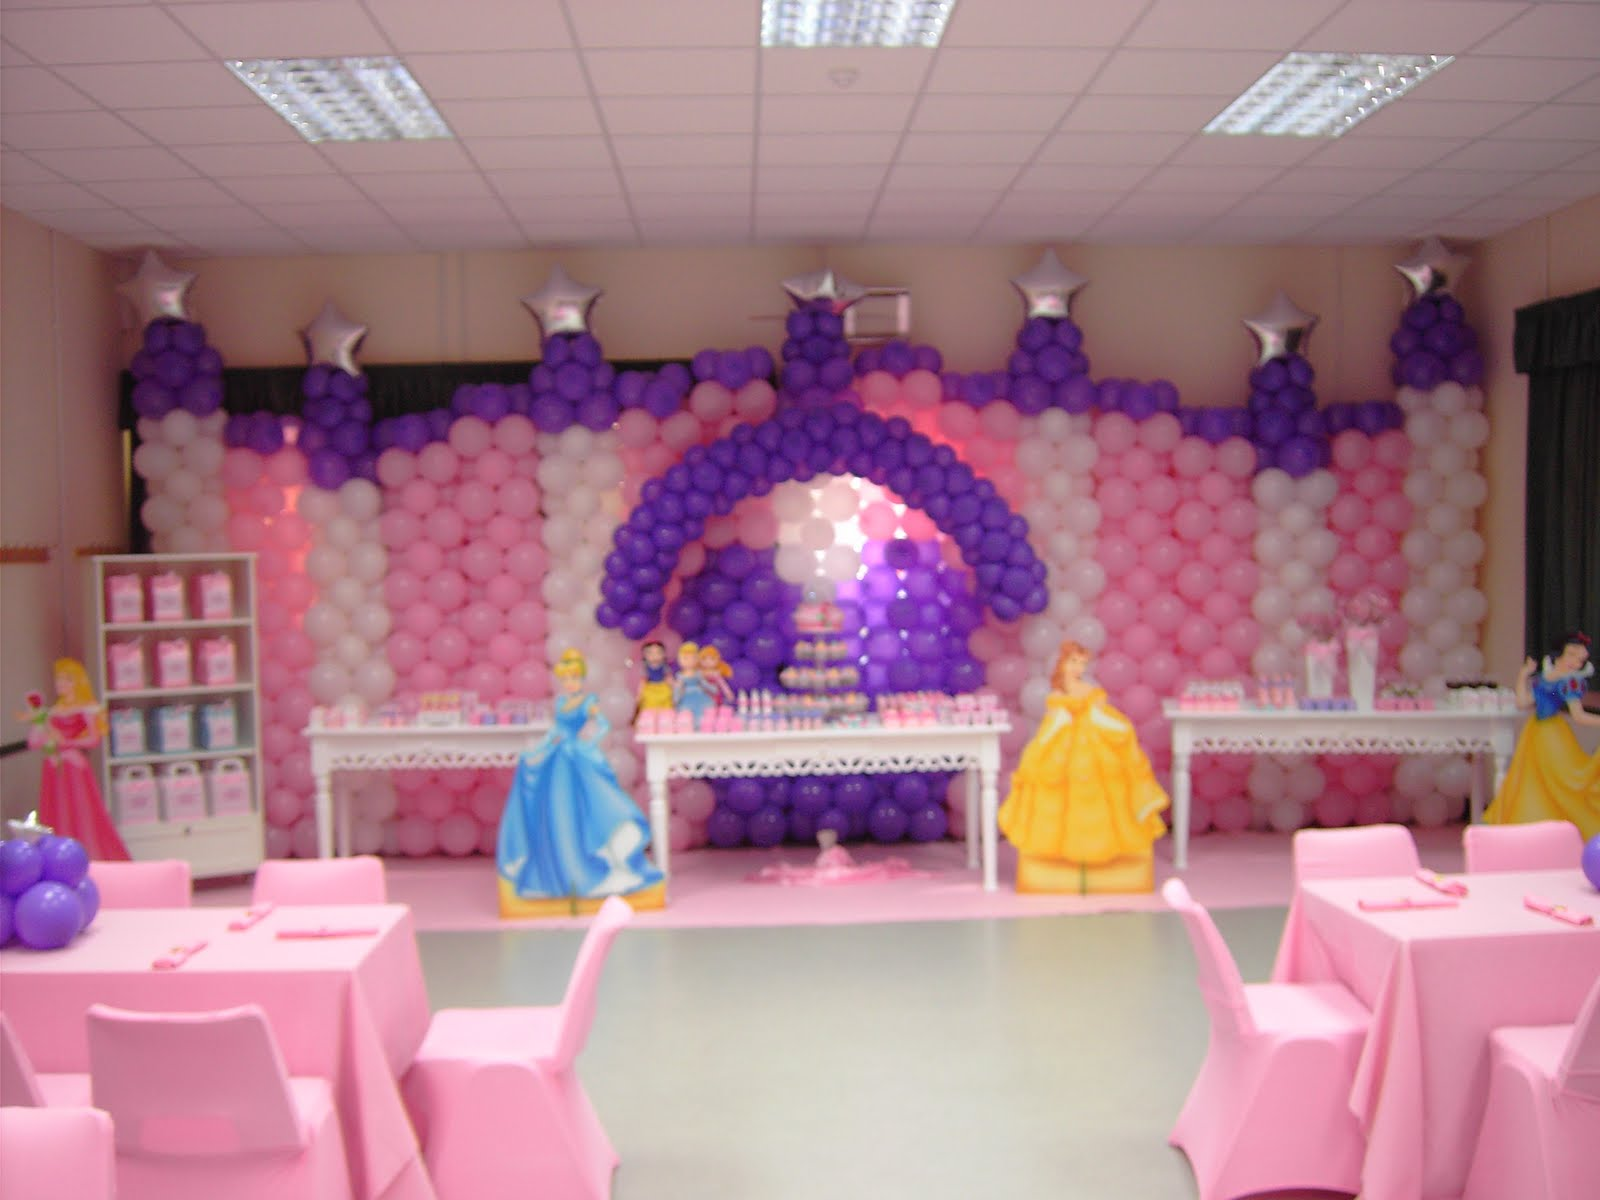 Madhura catering for Baby shower party hall decoration ideas